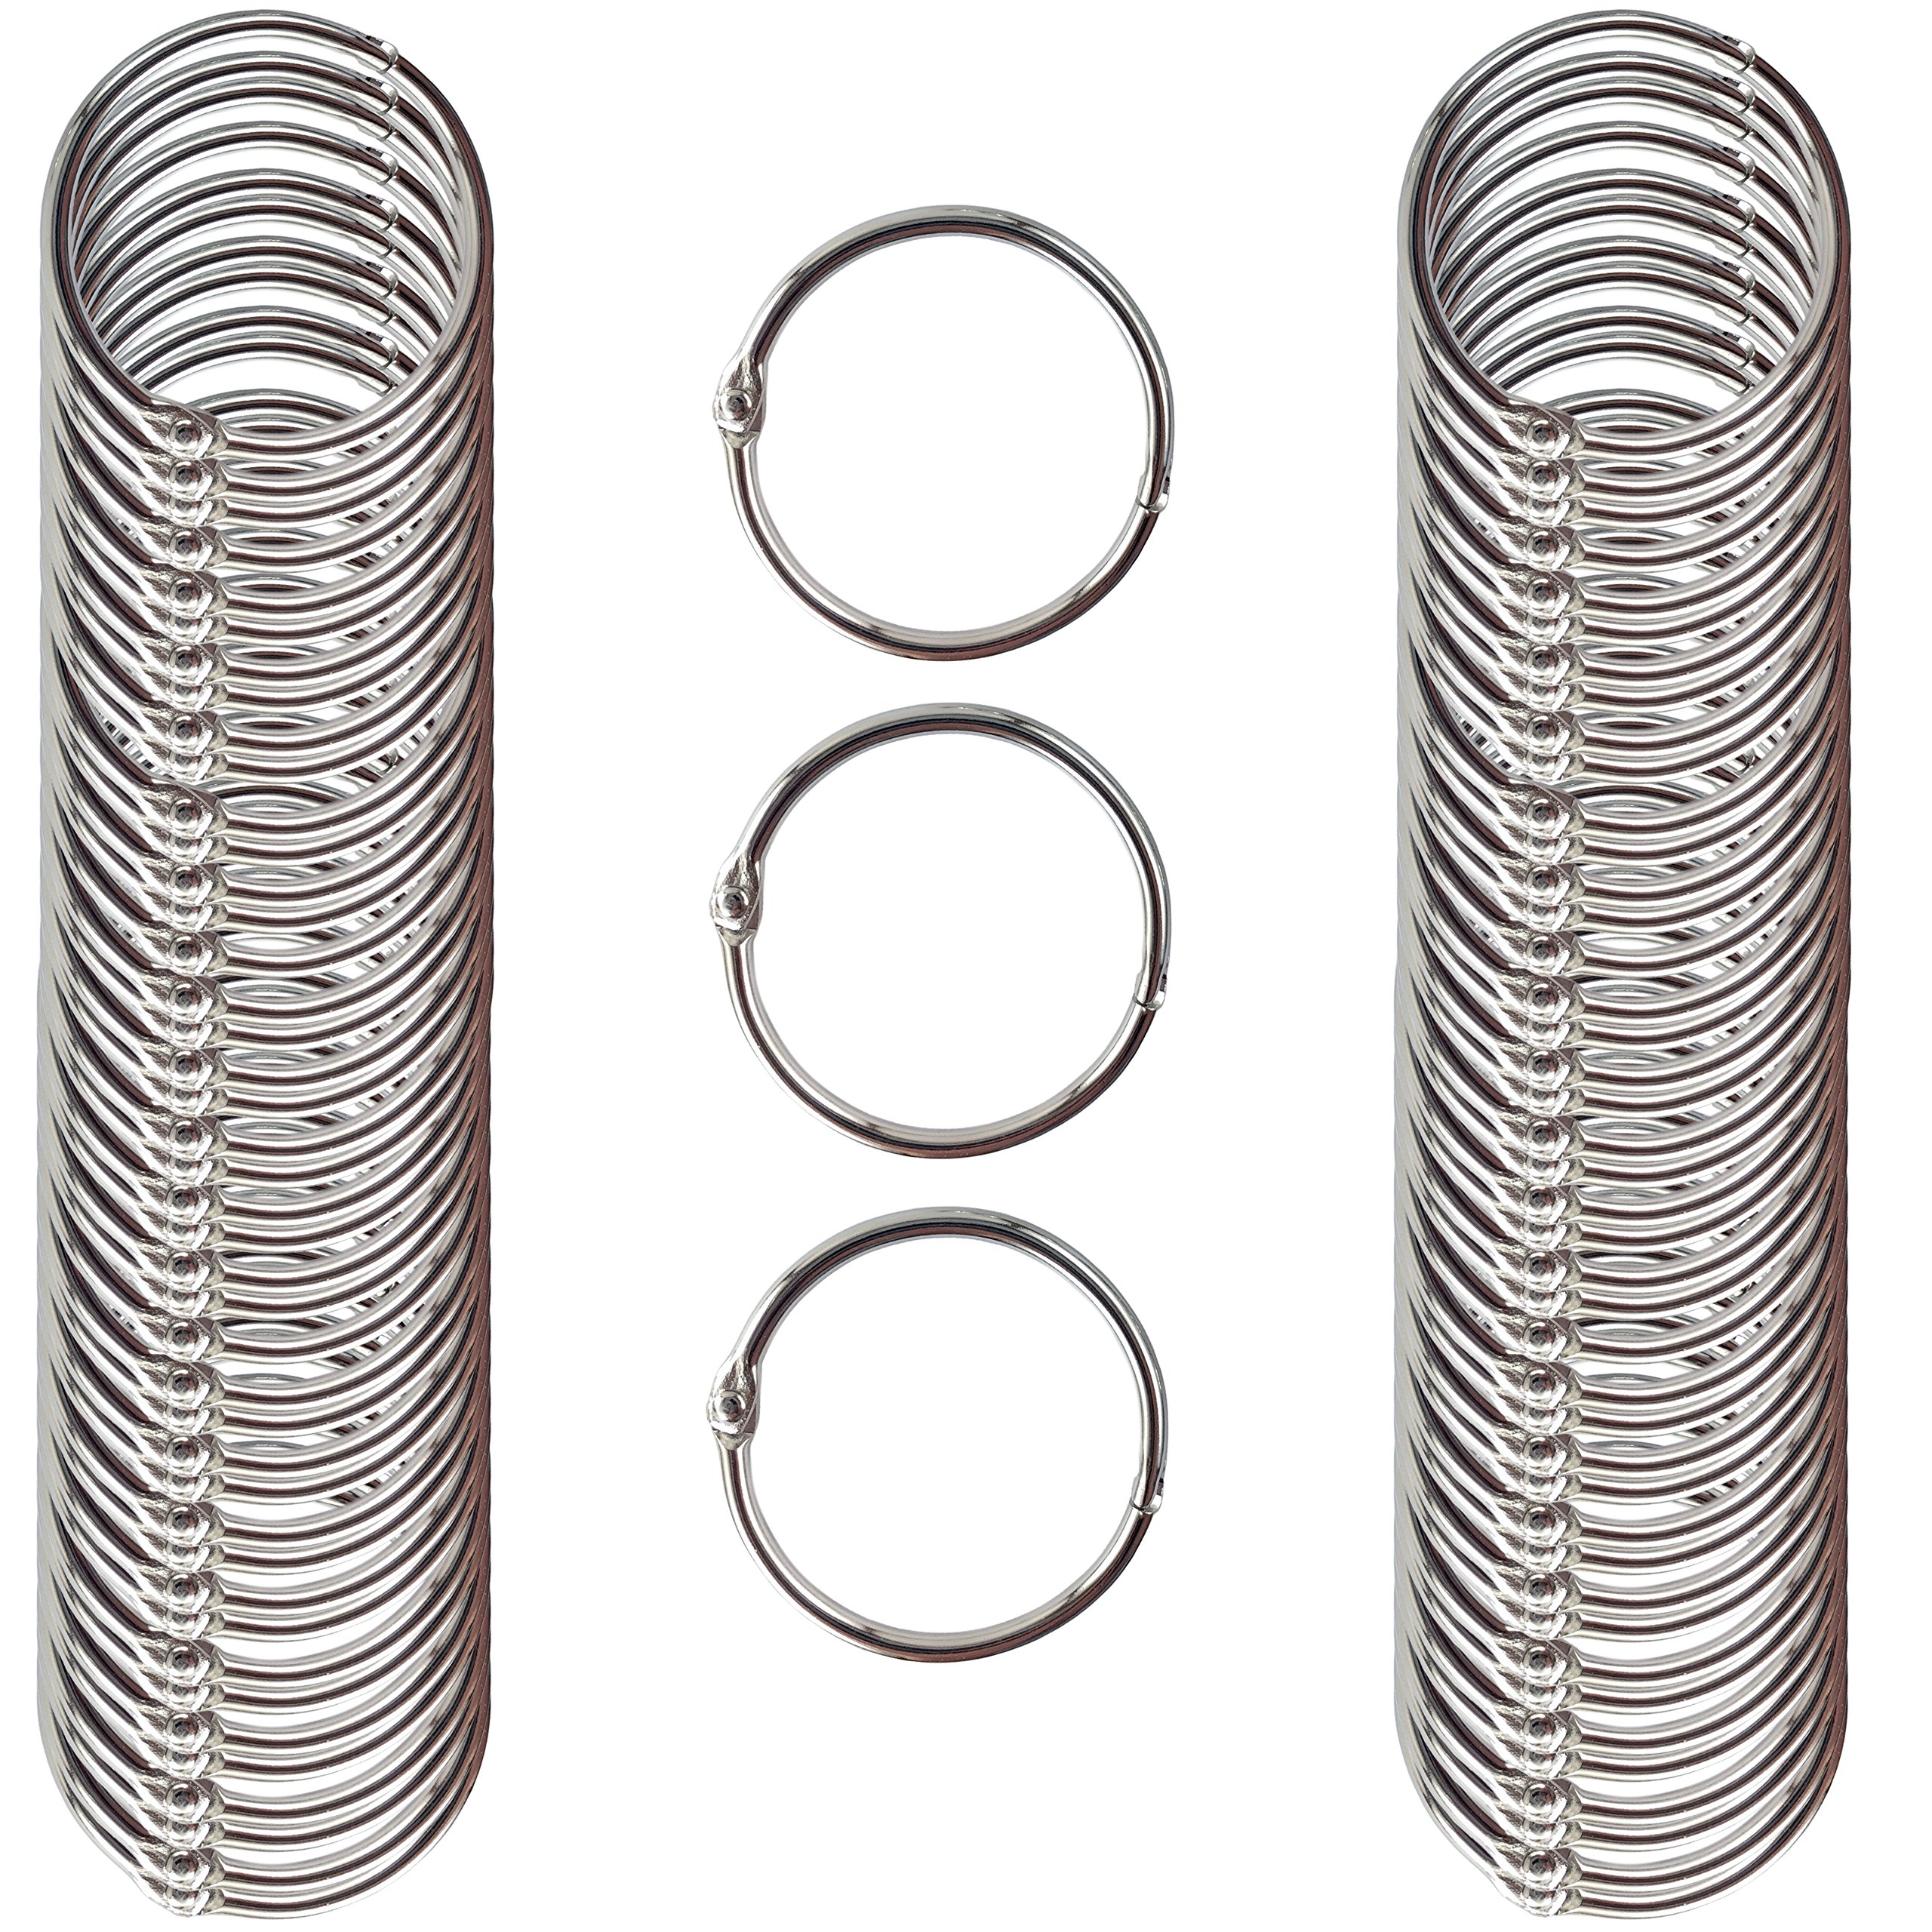 Clipco Book Rings Medium 1.5-Inch Nickel Plated (100-Pack) by Clipco